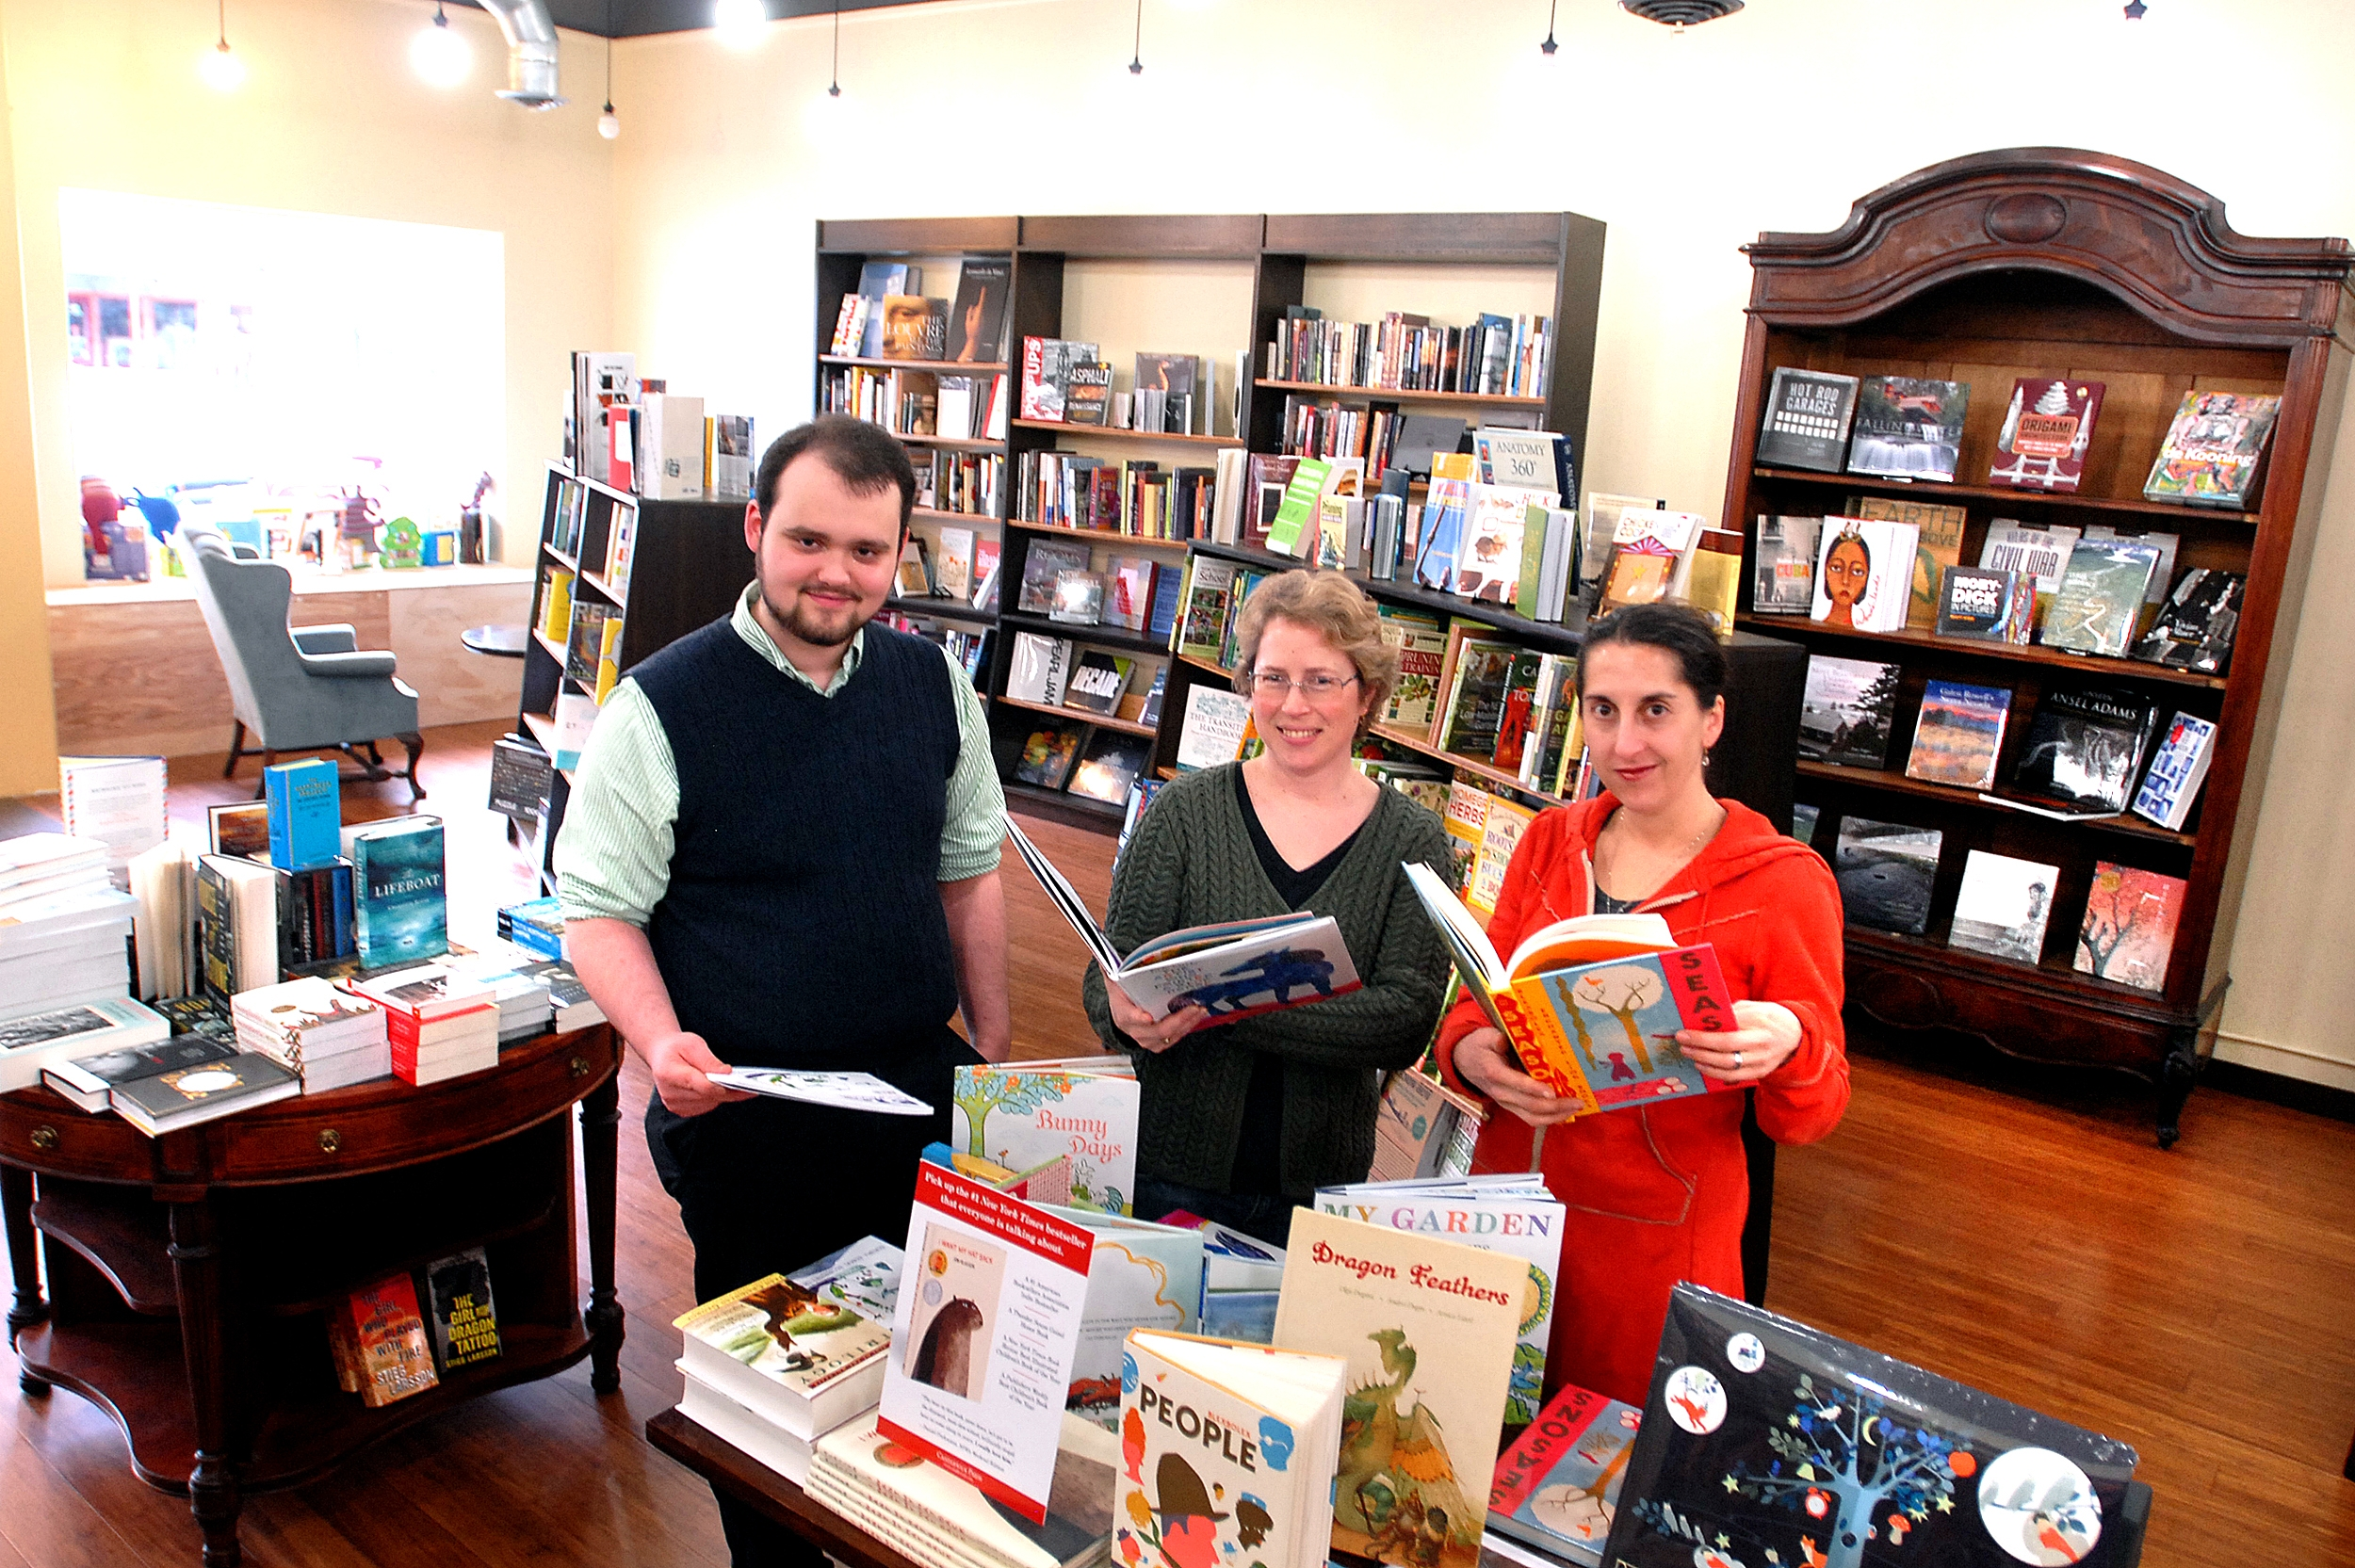 Nearly 20 authors signing Thursday at BookPeople's grand re-opening